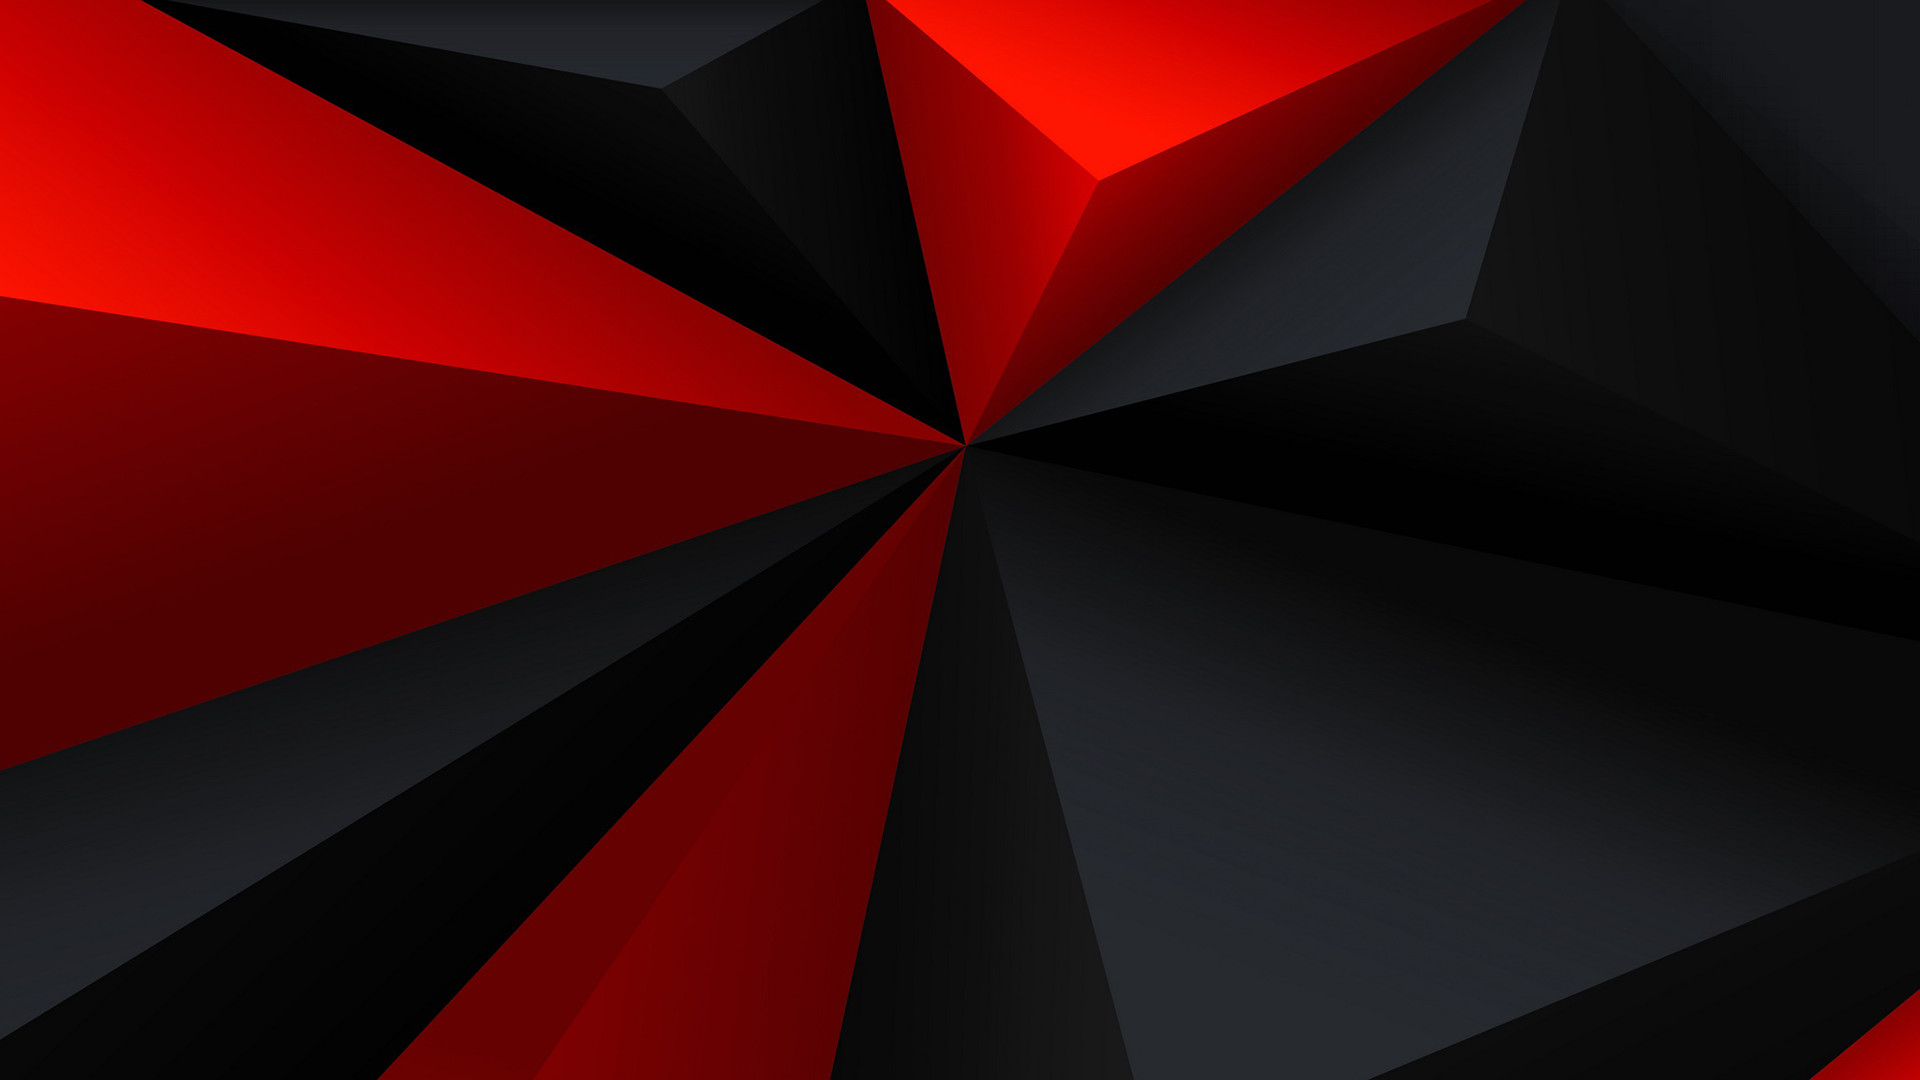 Black And Red >> Black And Red Wallpaper 66 Images